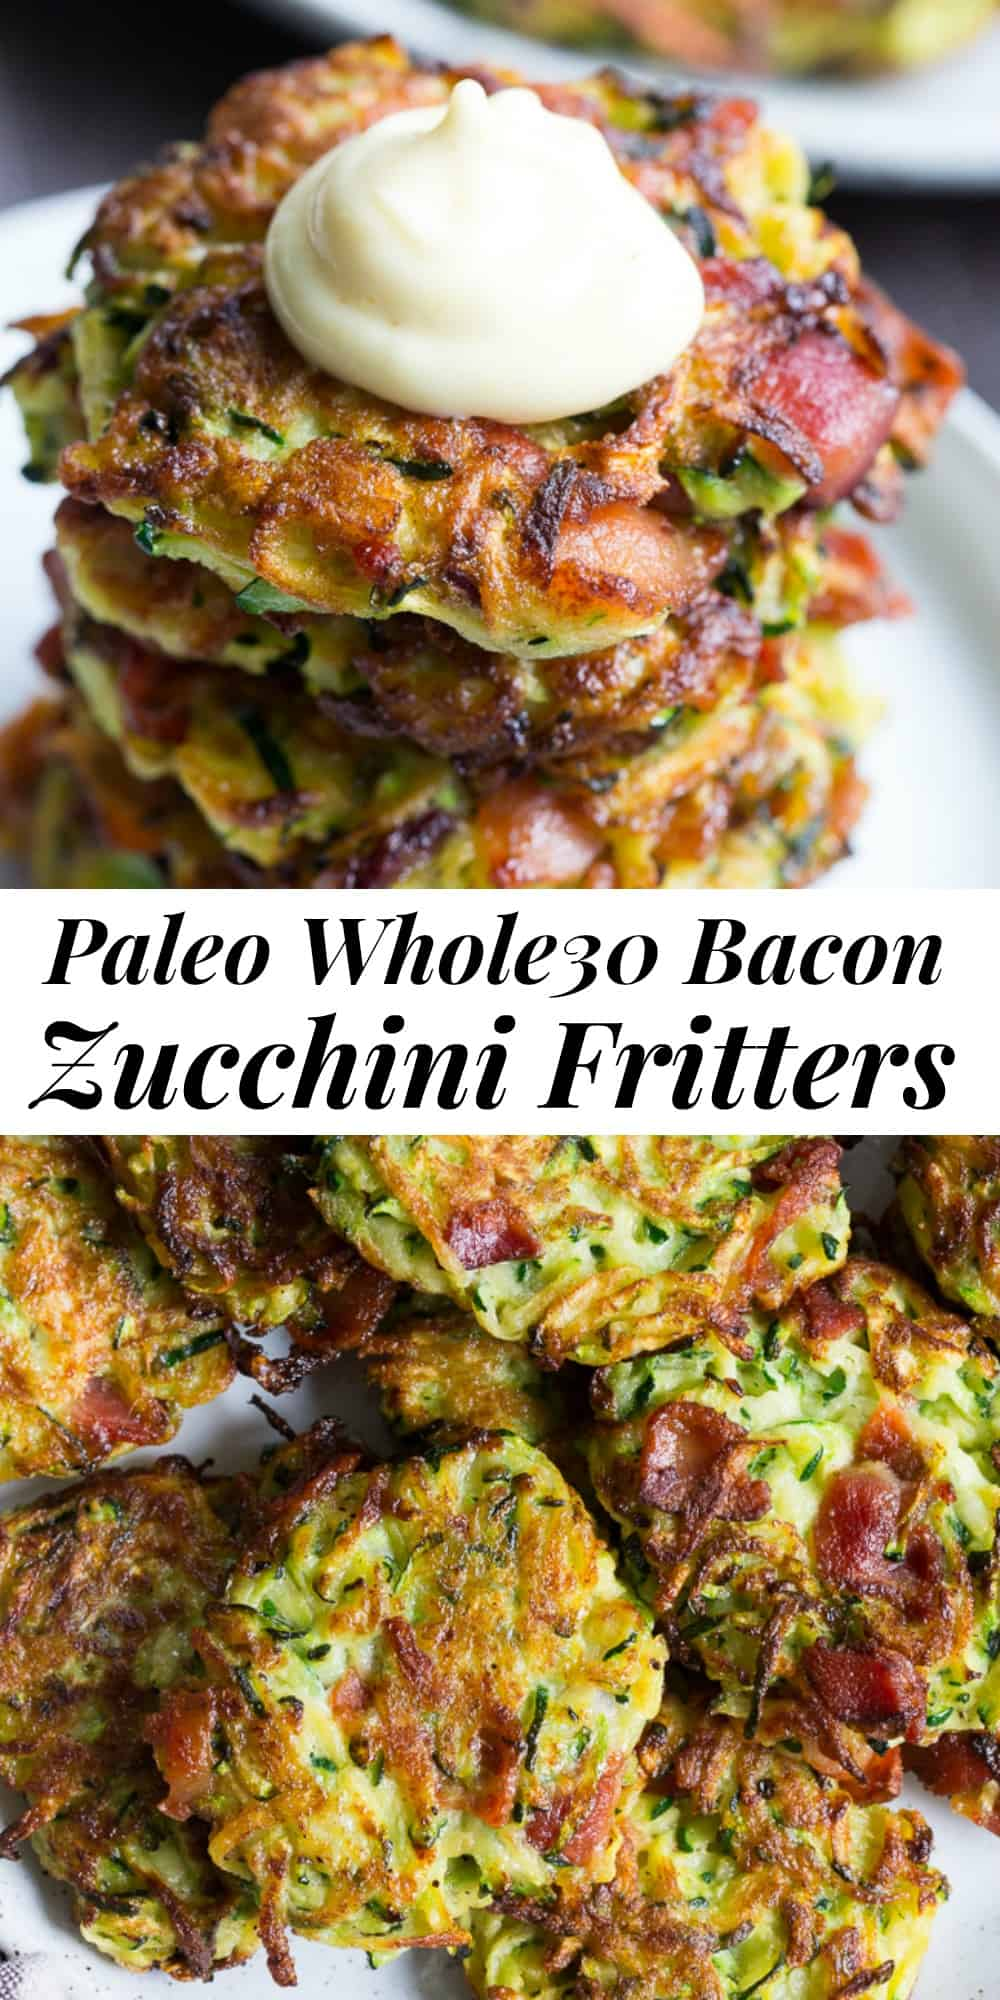 These savory bacon zucchini fritters are easy to make, packed with veggies and downright addicting!  They're delicious served as a side dish or appetizer with homemade ranch dip.  These healthy fritters are also paleo, Whole30 friendly, gluten free and dairy free. #paleo #whole30 #lowcarb #keto #zucchini